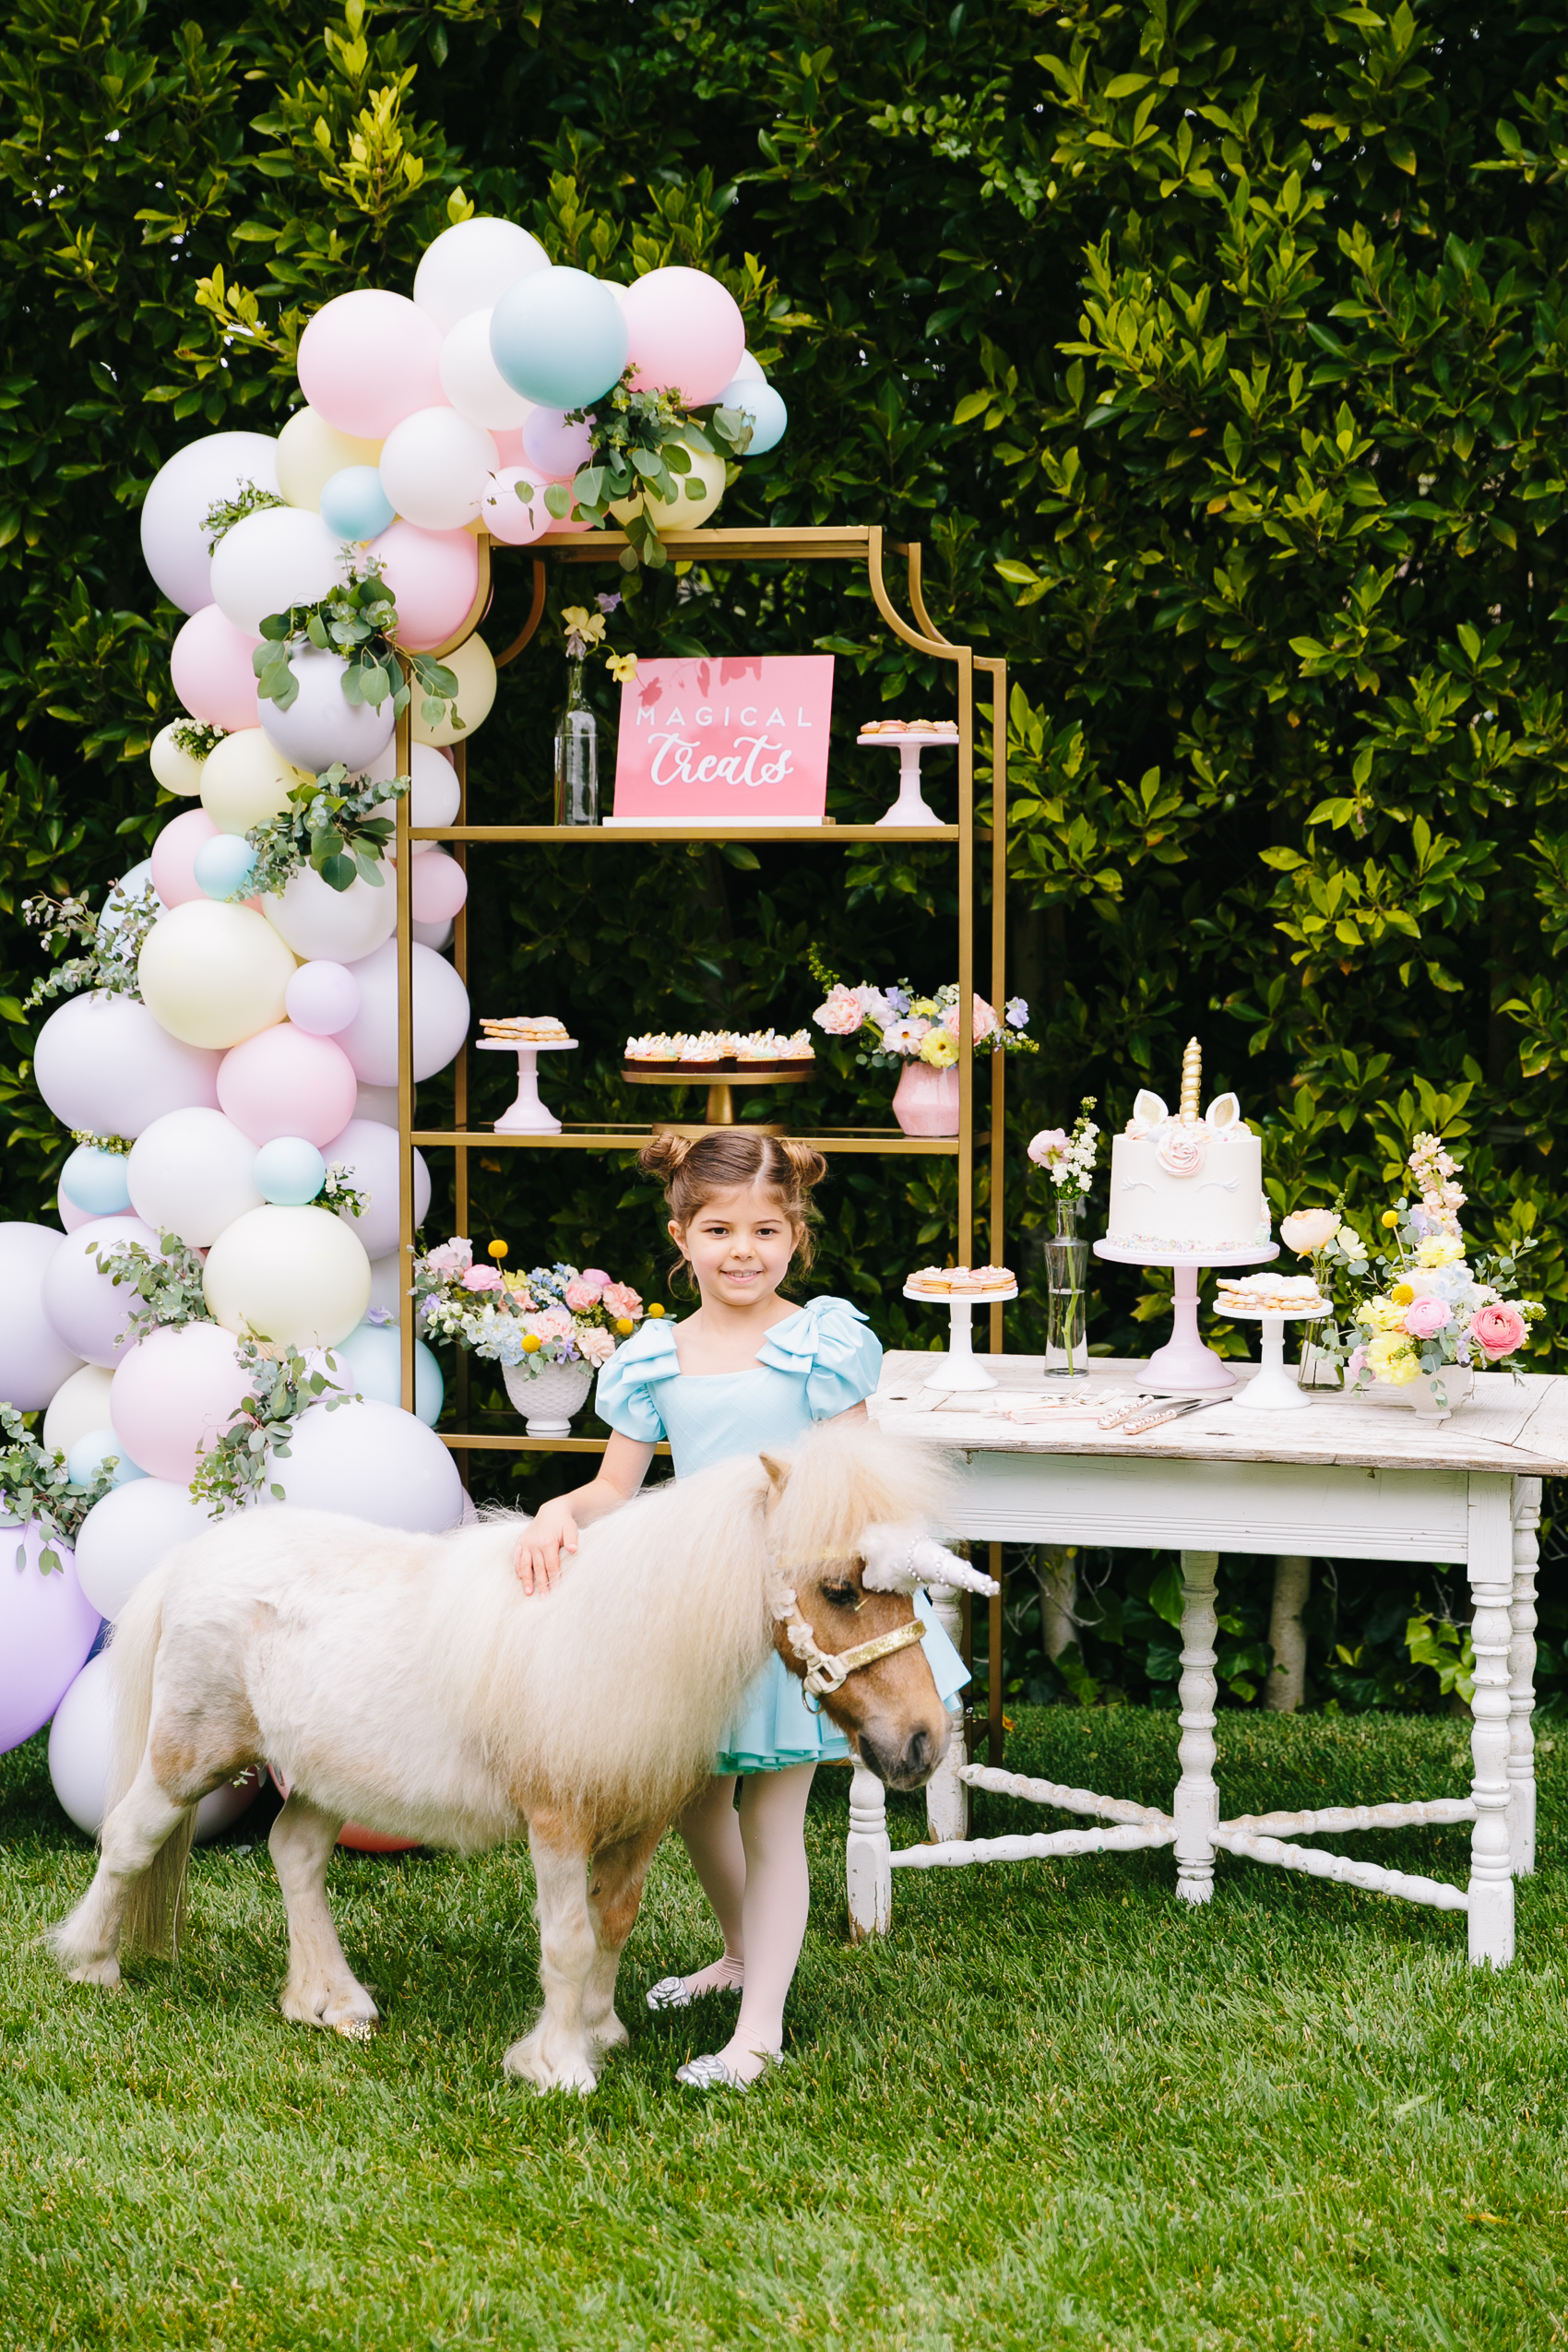 Los_Angeles_Family_Photographer_Luxury_Childrens_Party_Beverly_Hills_Unicorn_Birthday_Party-0605.jpg